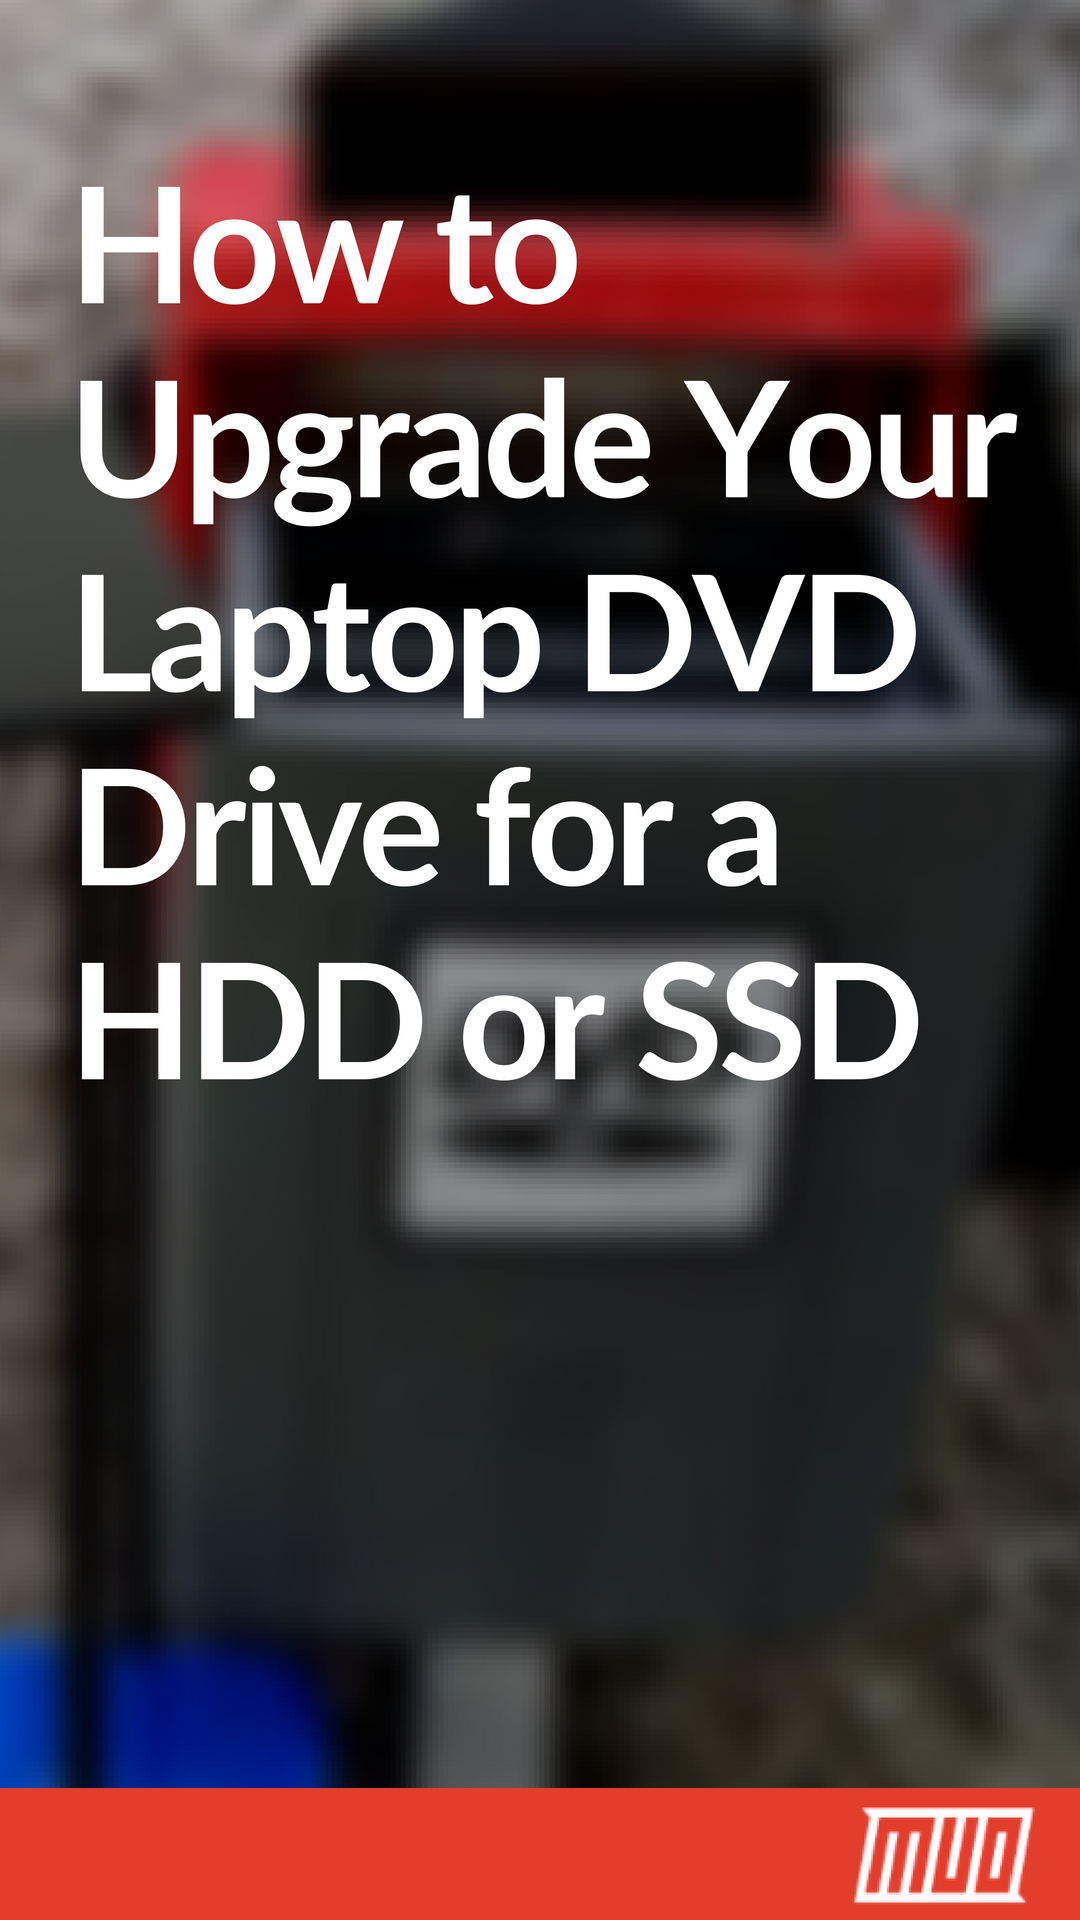 How To Upgrade Your Laptop Dvd Drive For A Hdd Or Ssd Dvd Drive Laptop Repair Life Hacks Computer